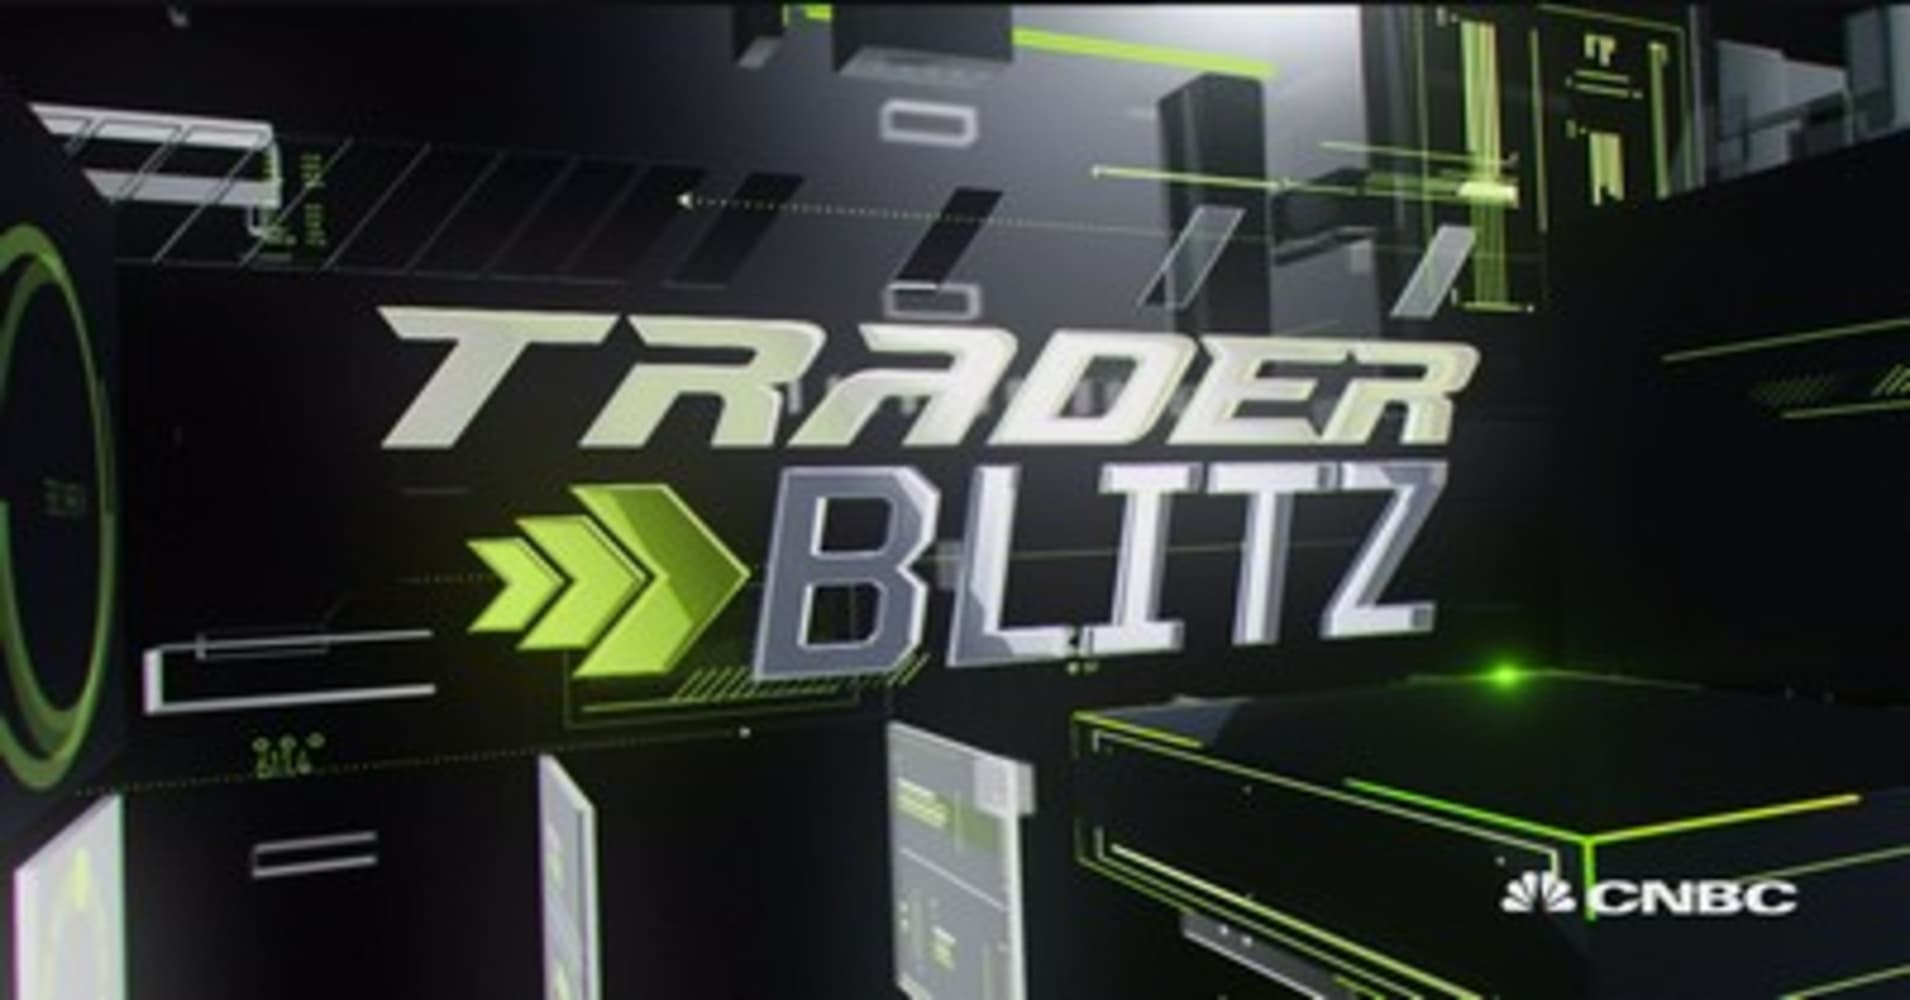 Grocery, financials, an airline & cosmetics in the trader blitz